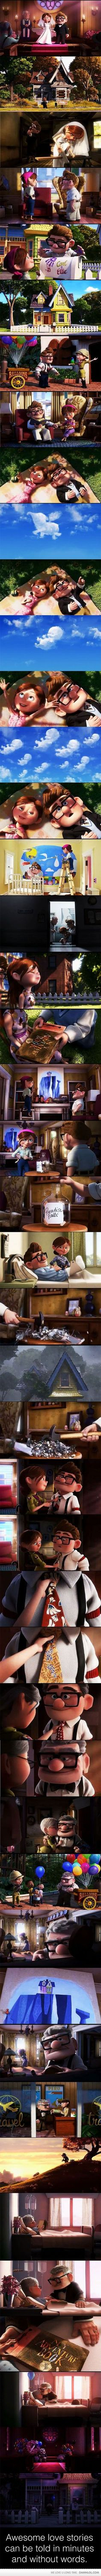 Well done, Pixar: